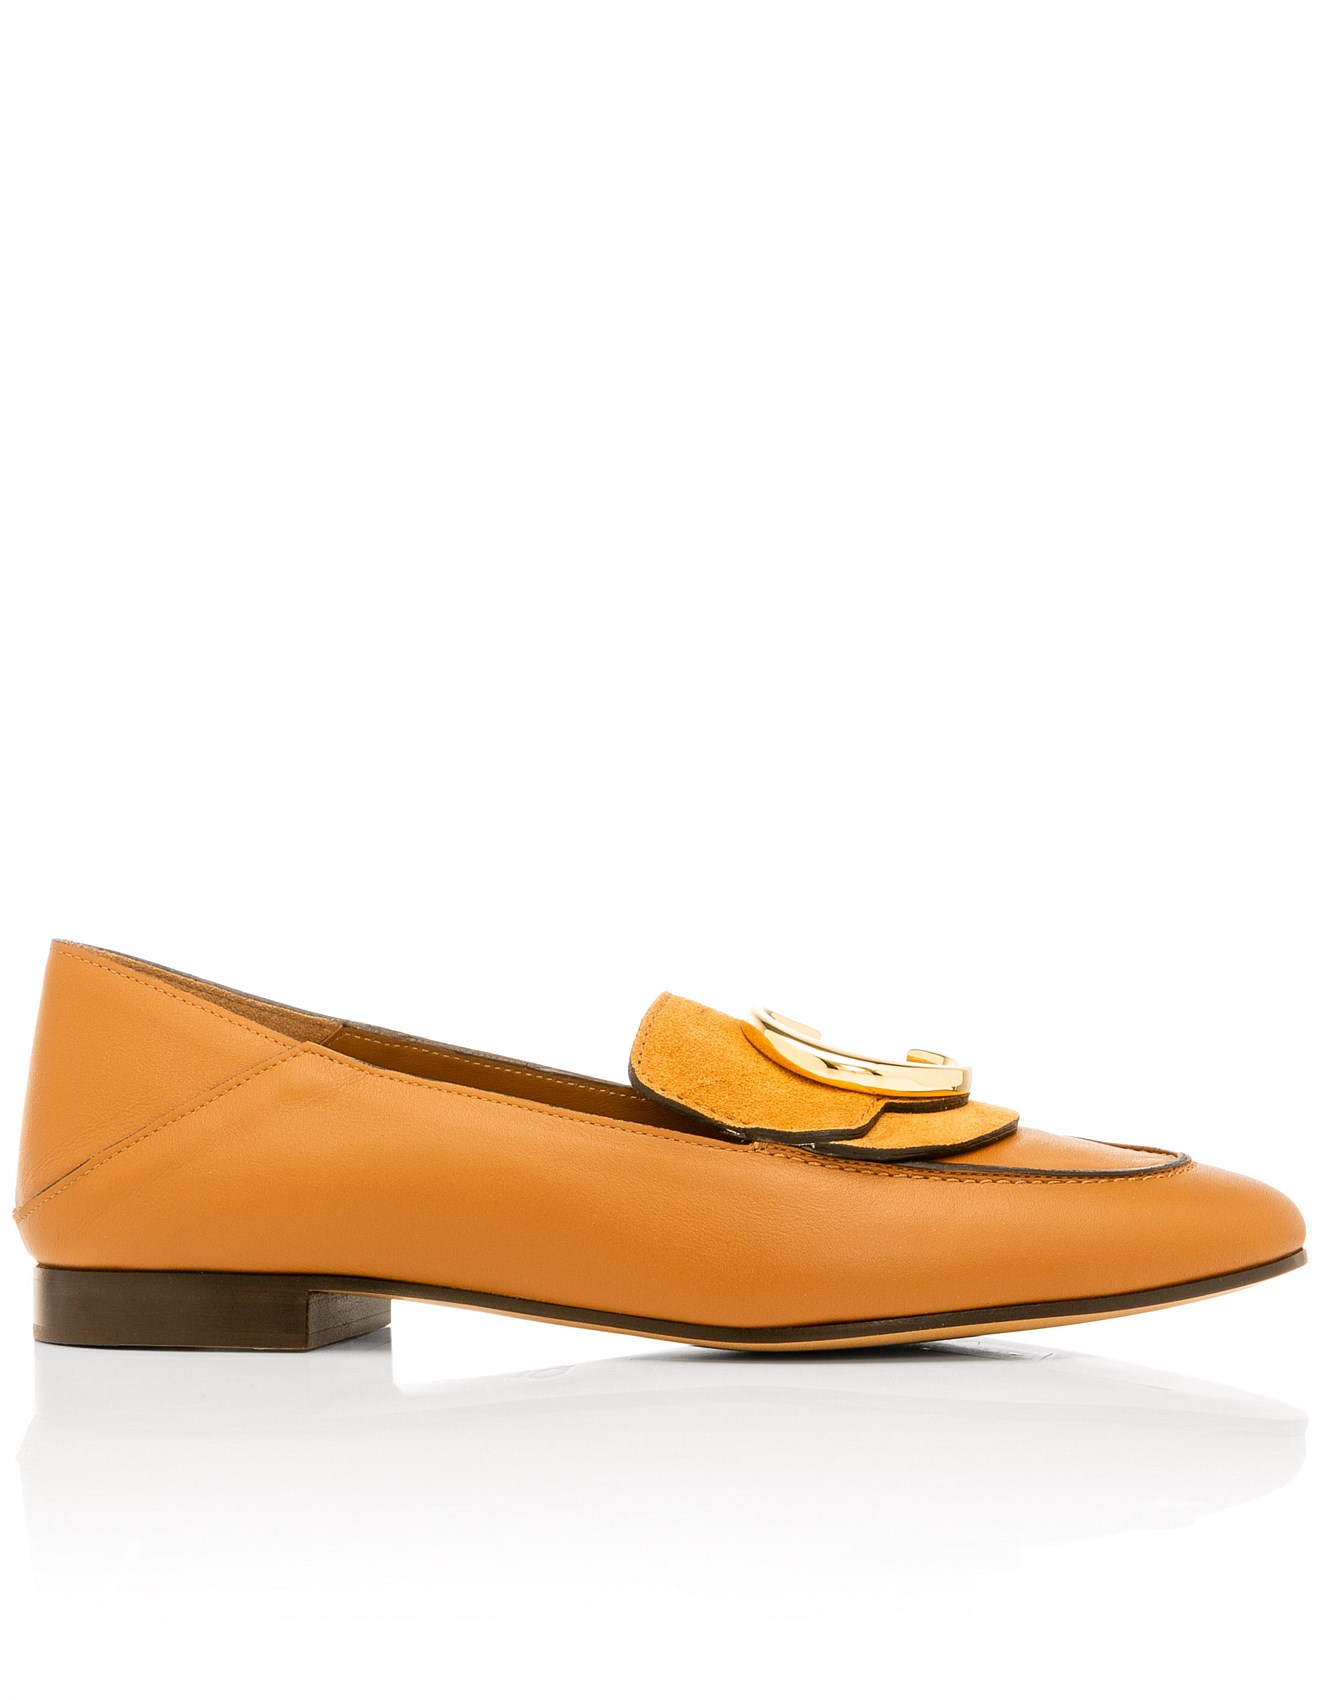 d278530b2ad SIGNATURE LOAFER